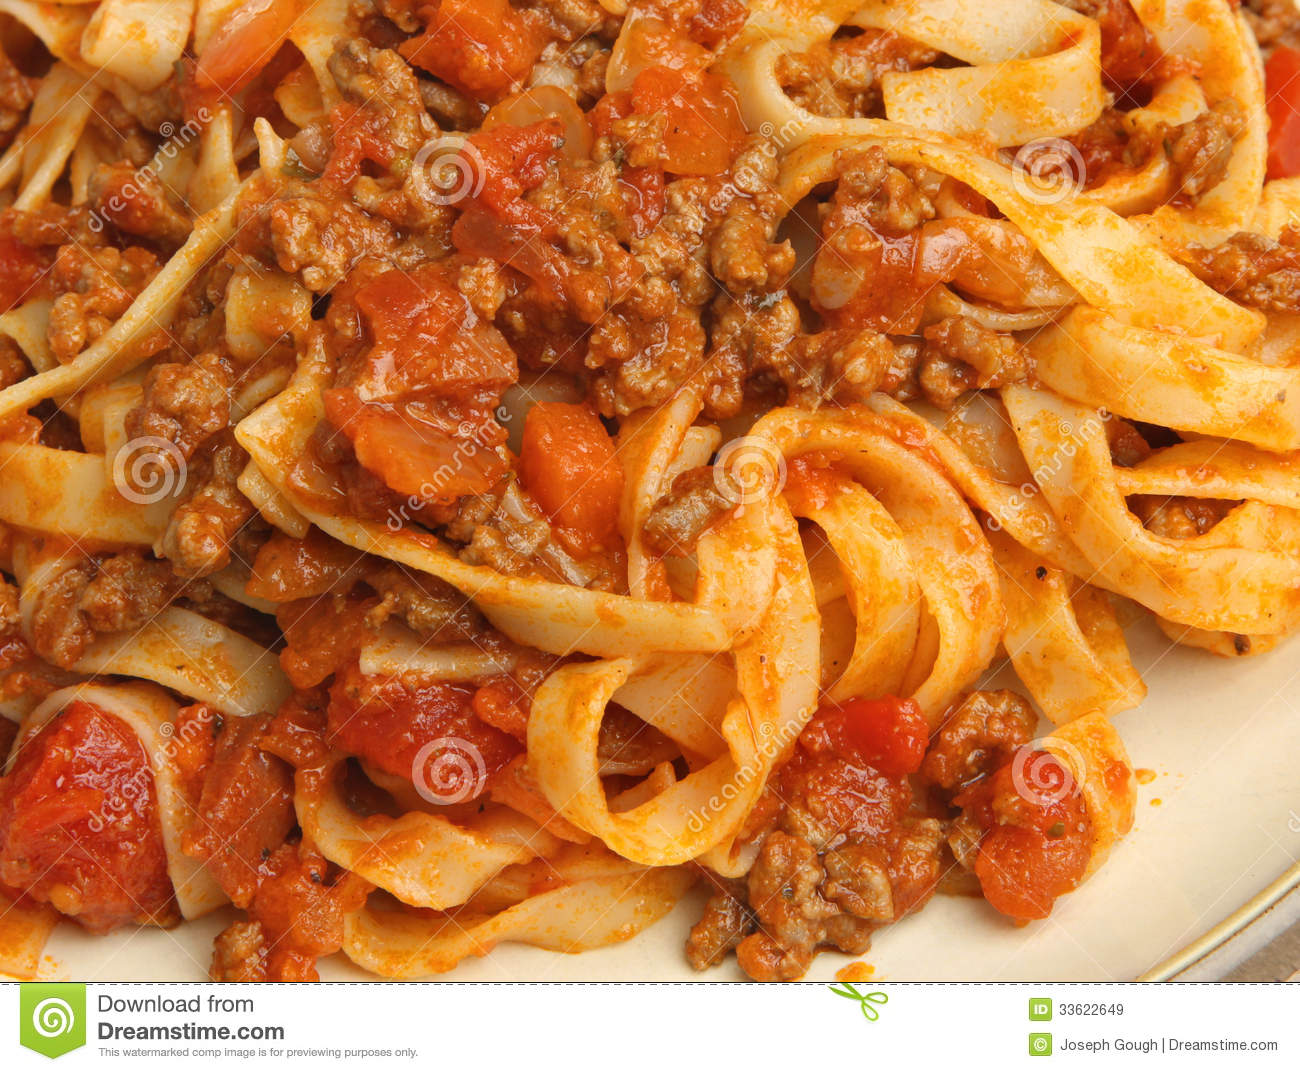 Tagliatelle Pasta With Bolognese Sauce Royalty Free Stock Images ...